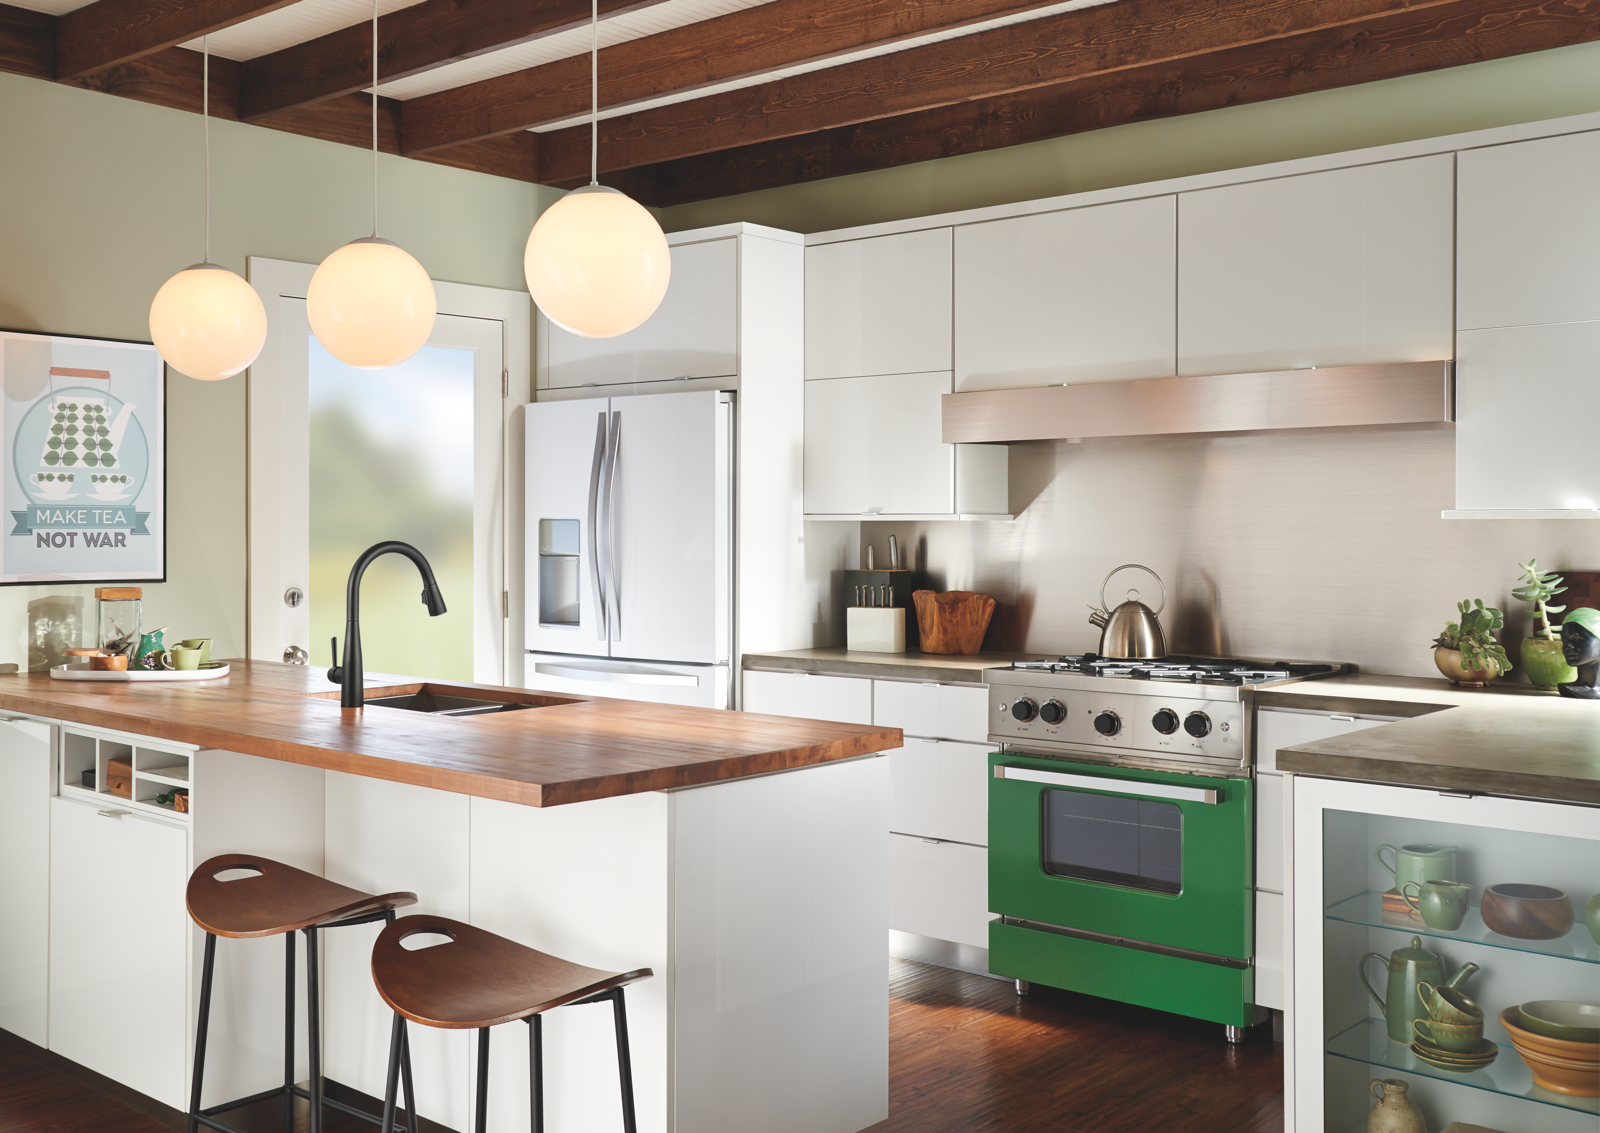 Tagged: Kitchen, Range, Range Hood, White Cabinet, Medium Hardwood Floor, Wood Counter, and Refrigerator.  Photo 1 of 8 in 8 Ways to Refresh and Personalize Your Kitchen